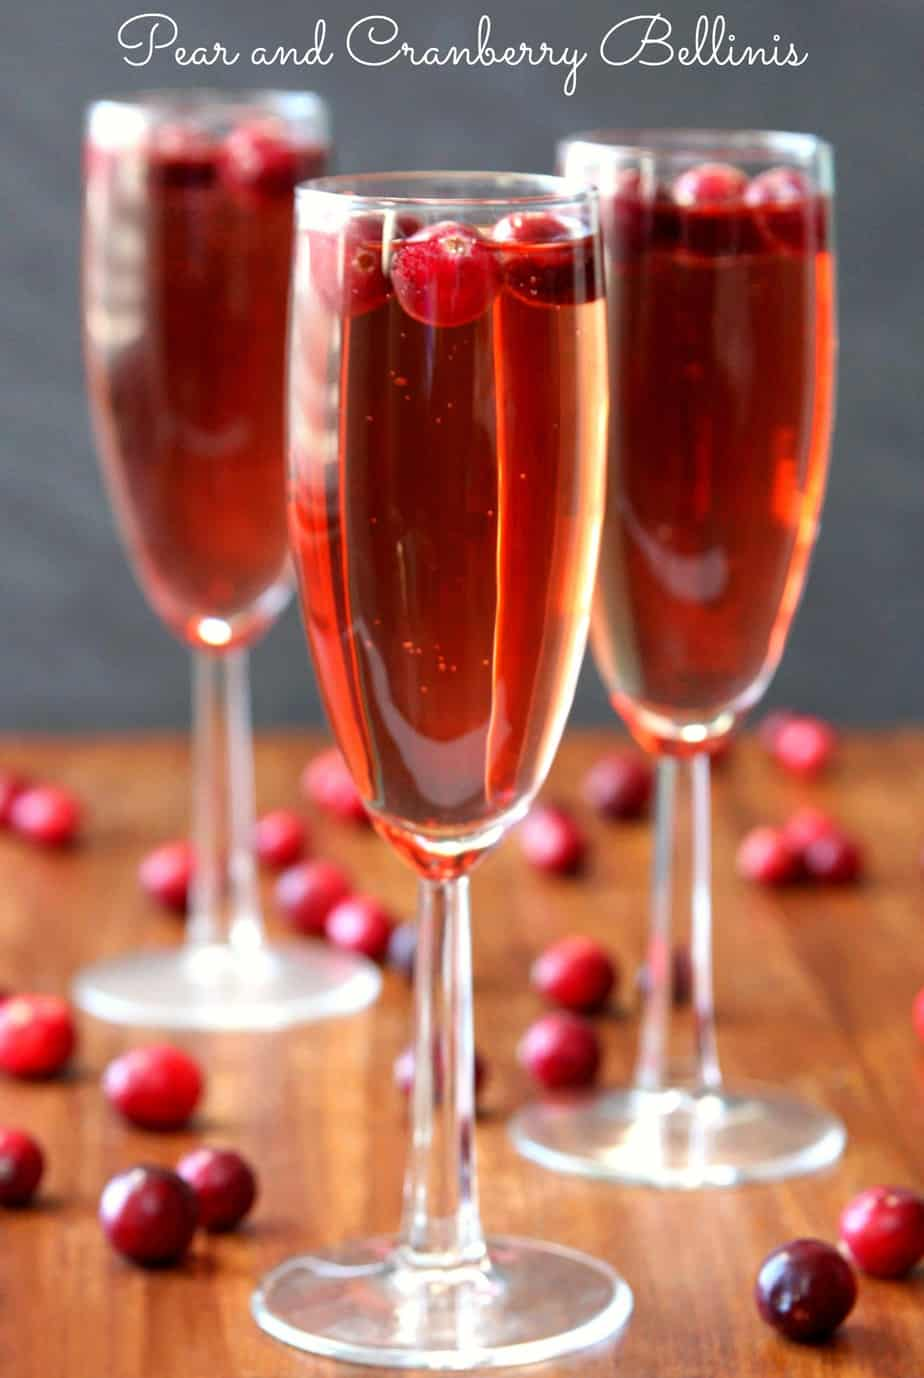 pear-and-cranberry-bellinis